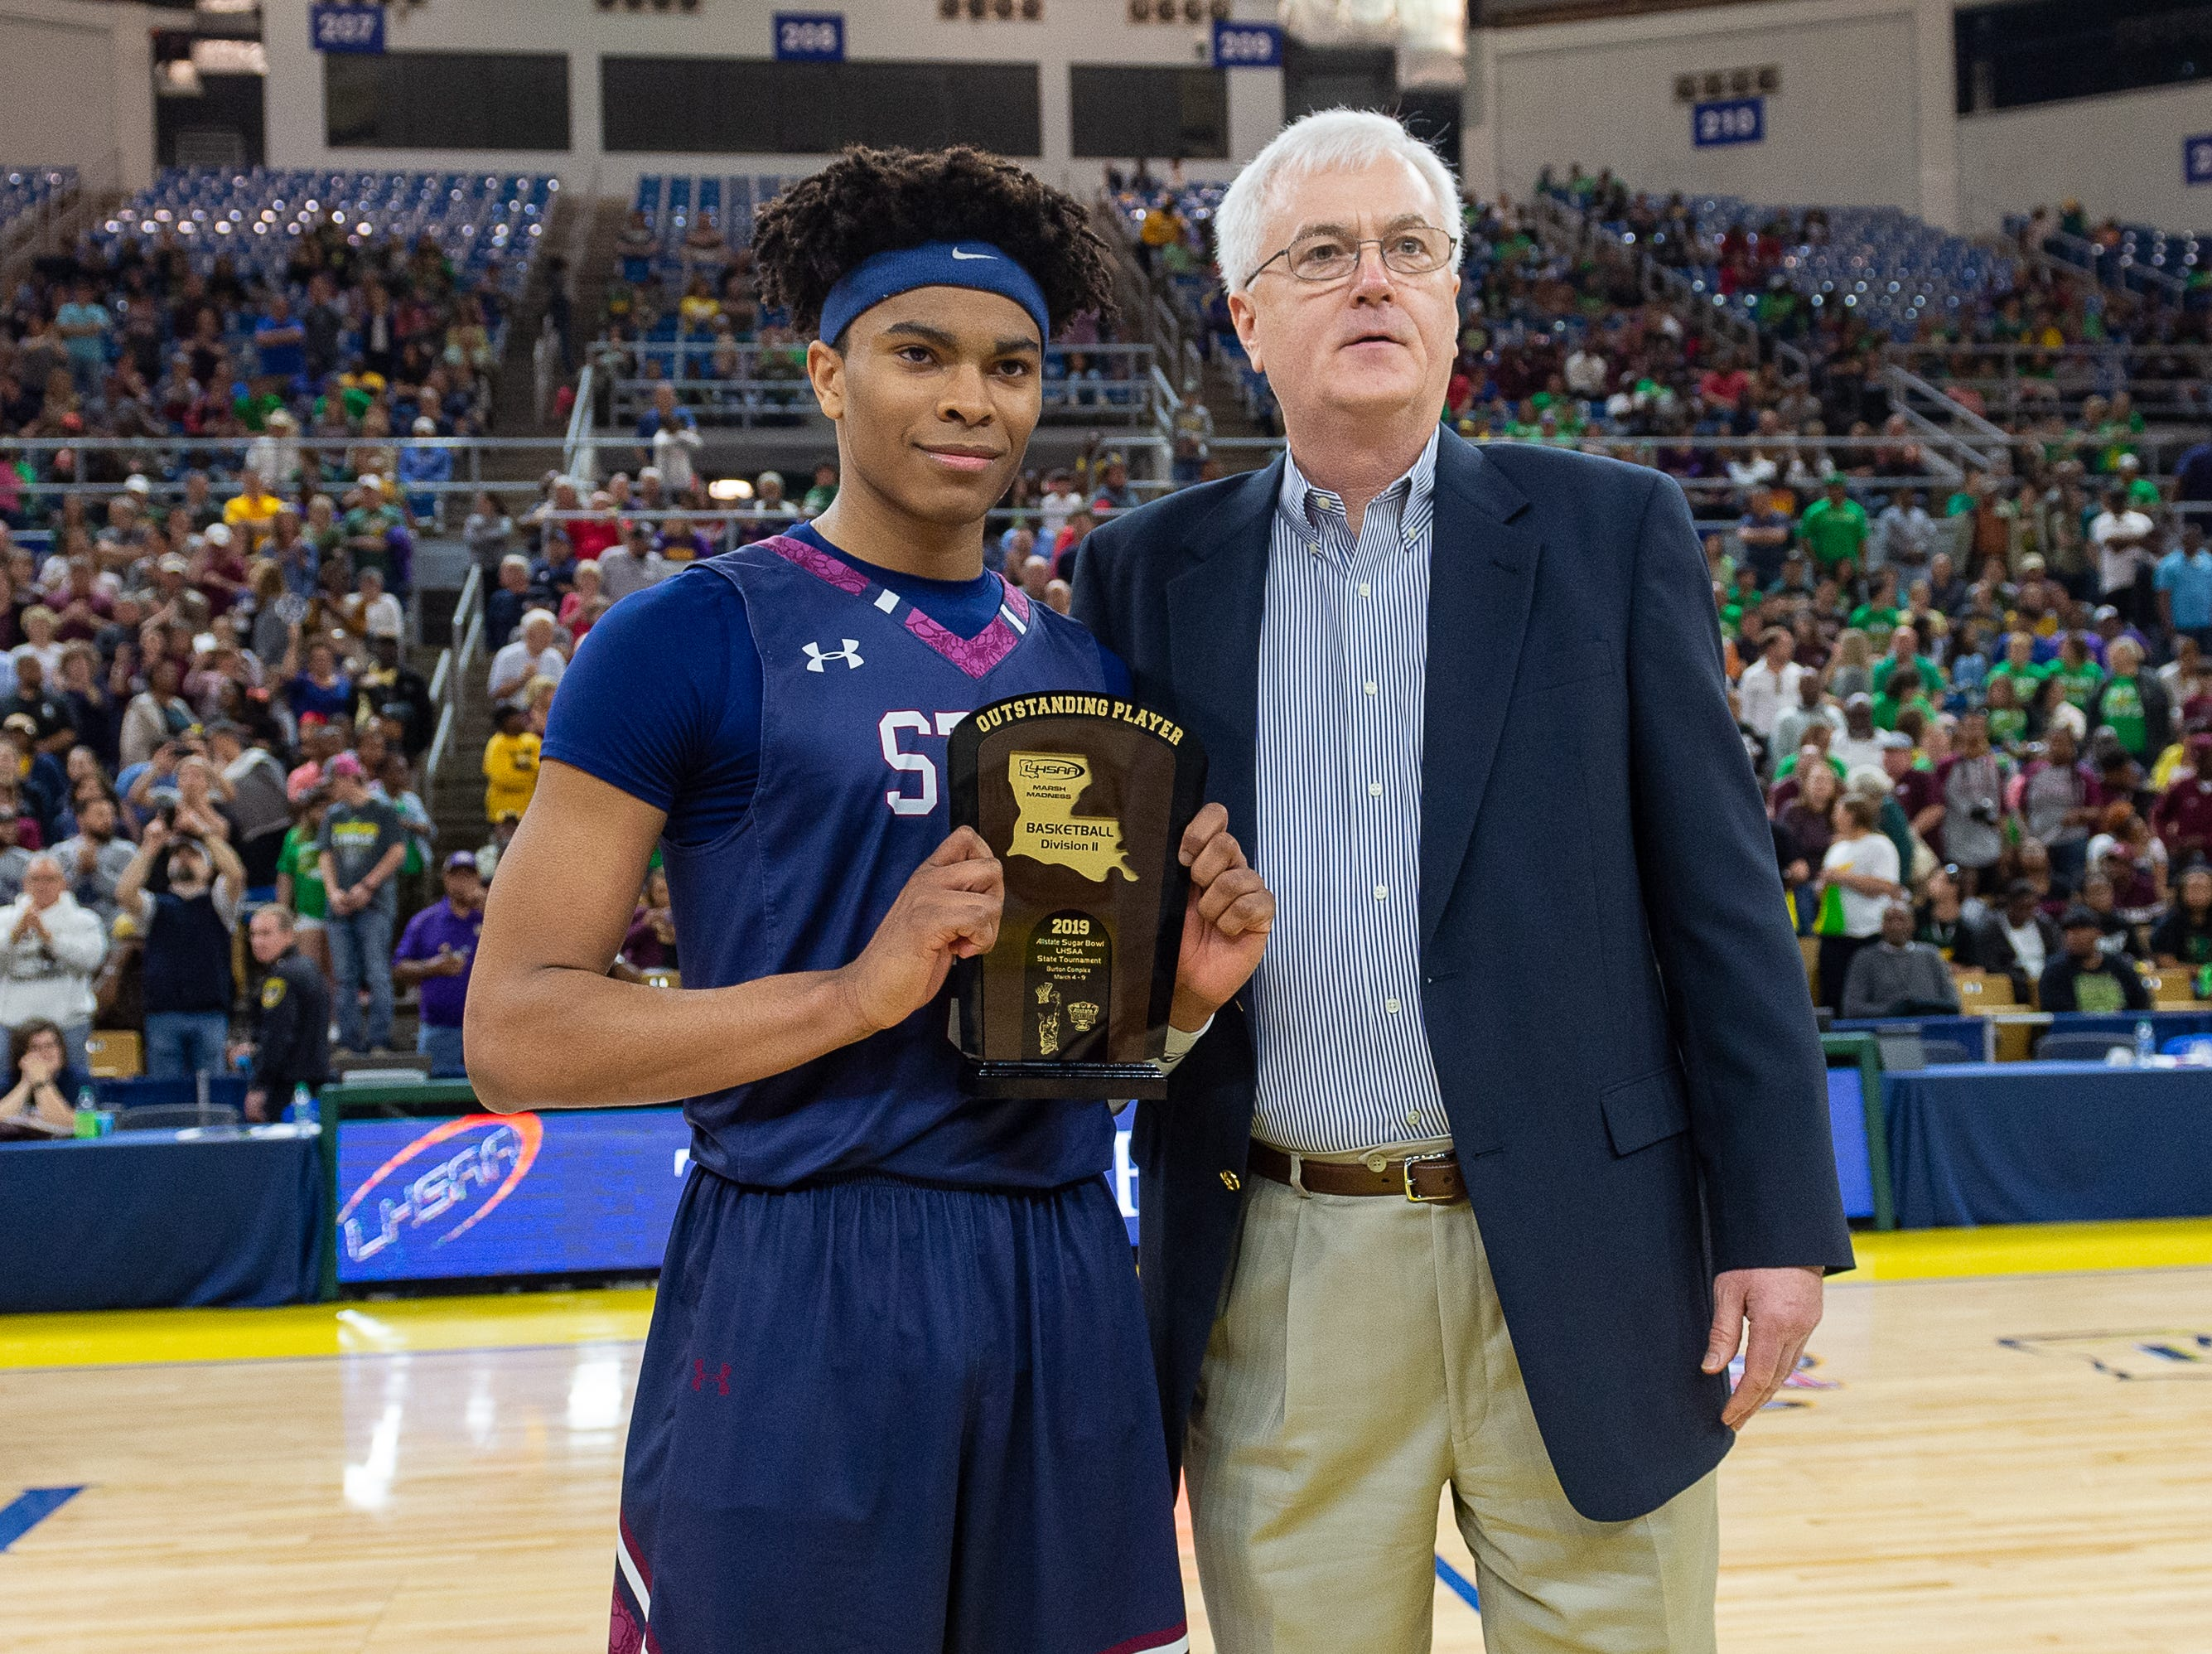 Jaden Shelvin named outstanding player of the game as The STM Cougars beat DeLaSalle in double overtime to win the Allstate Sugar Bowl/LHSAA Boys' Marsh Madness Div II State Championship. Saturday, March 9, 2019.